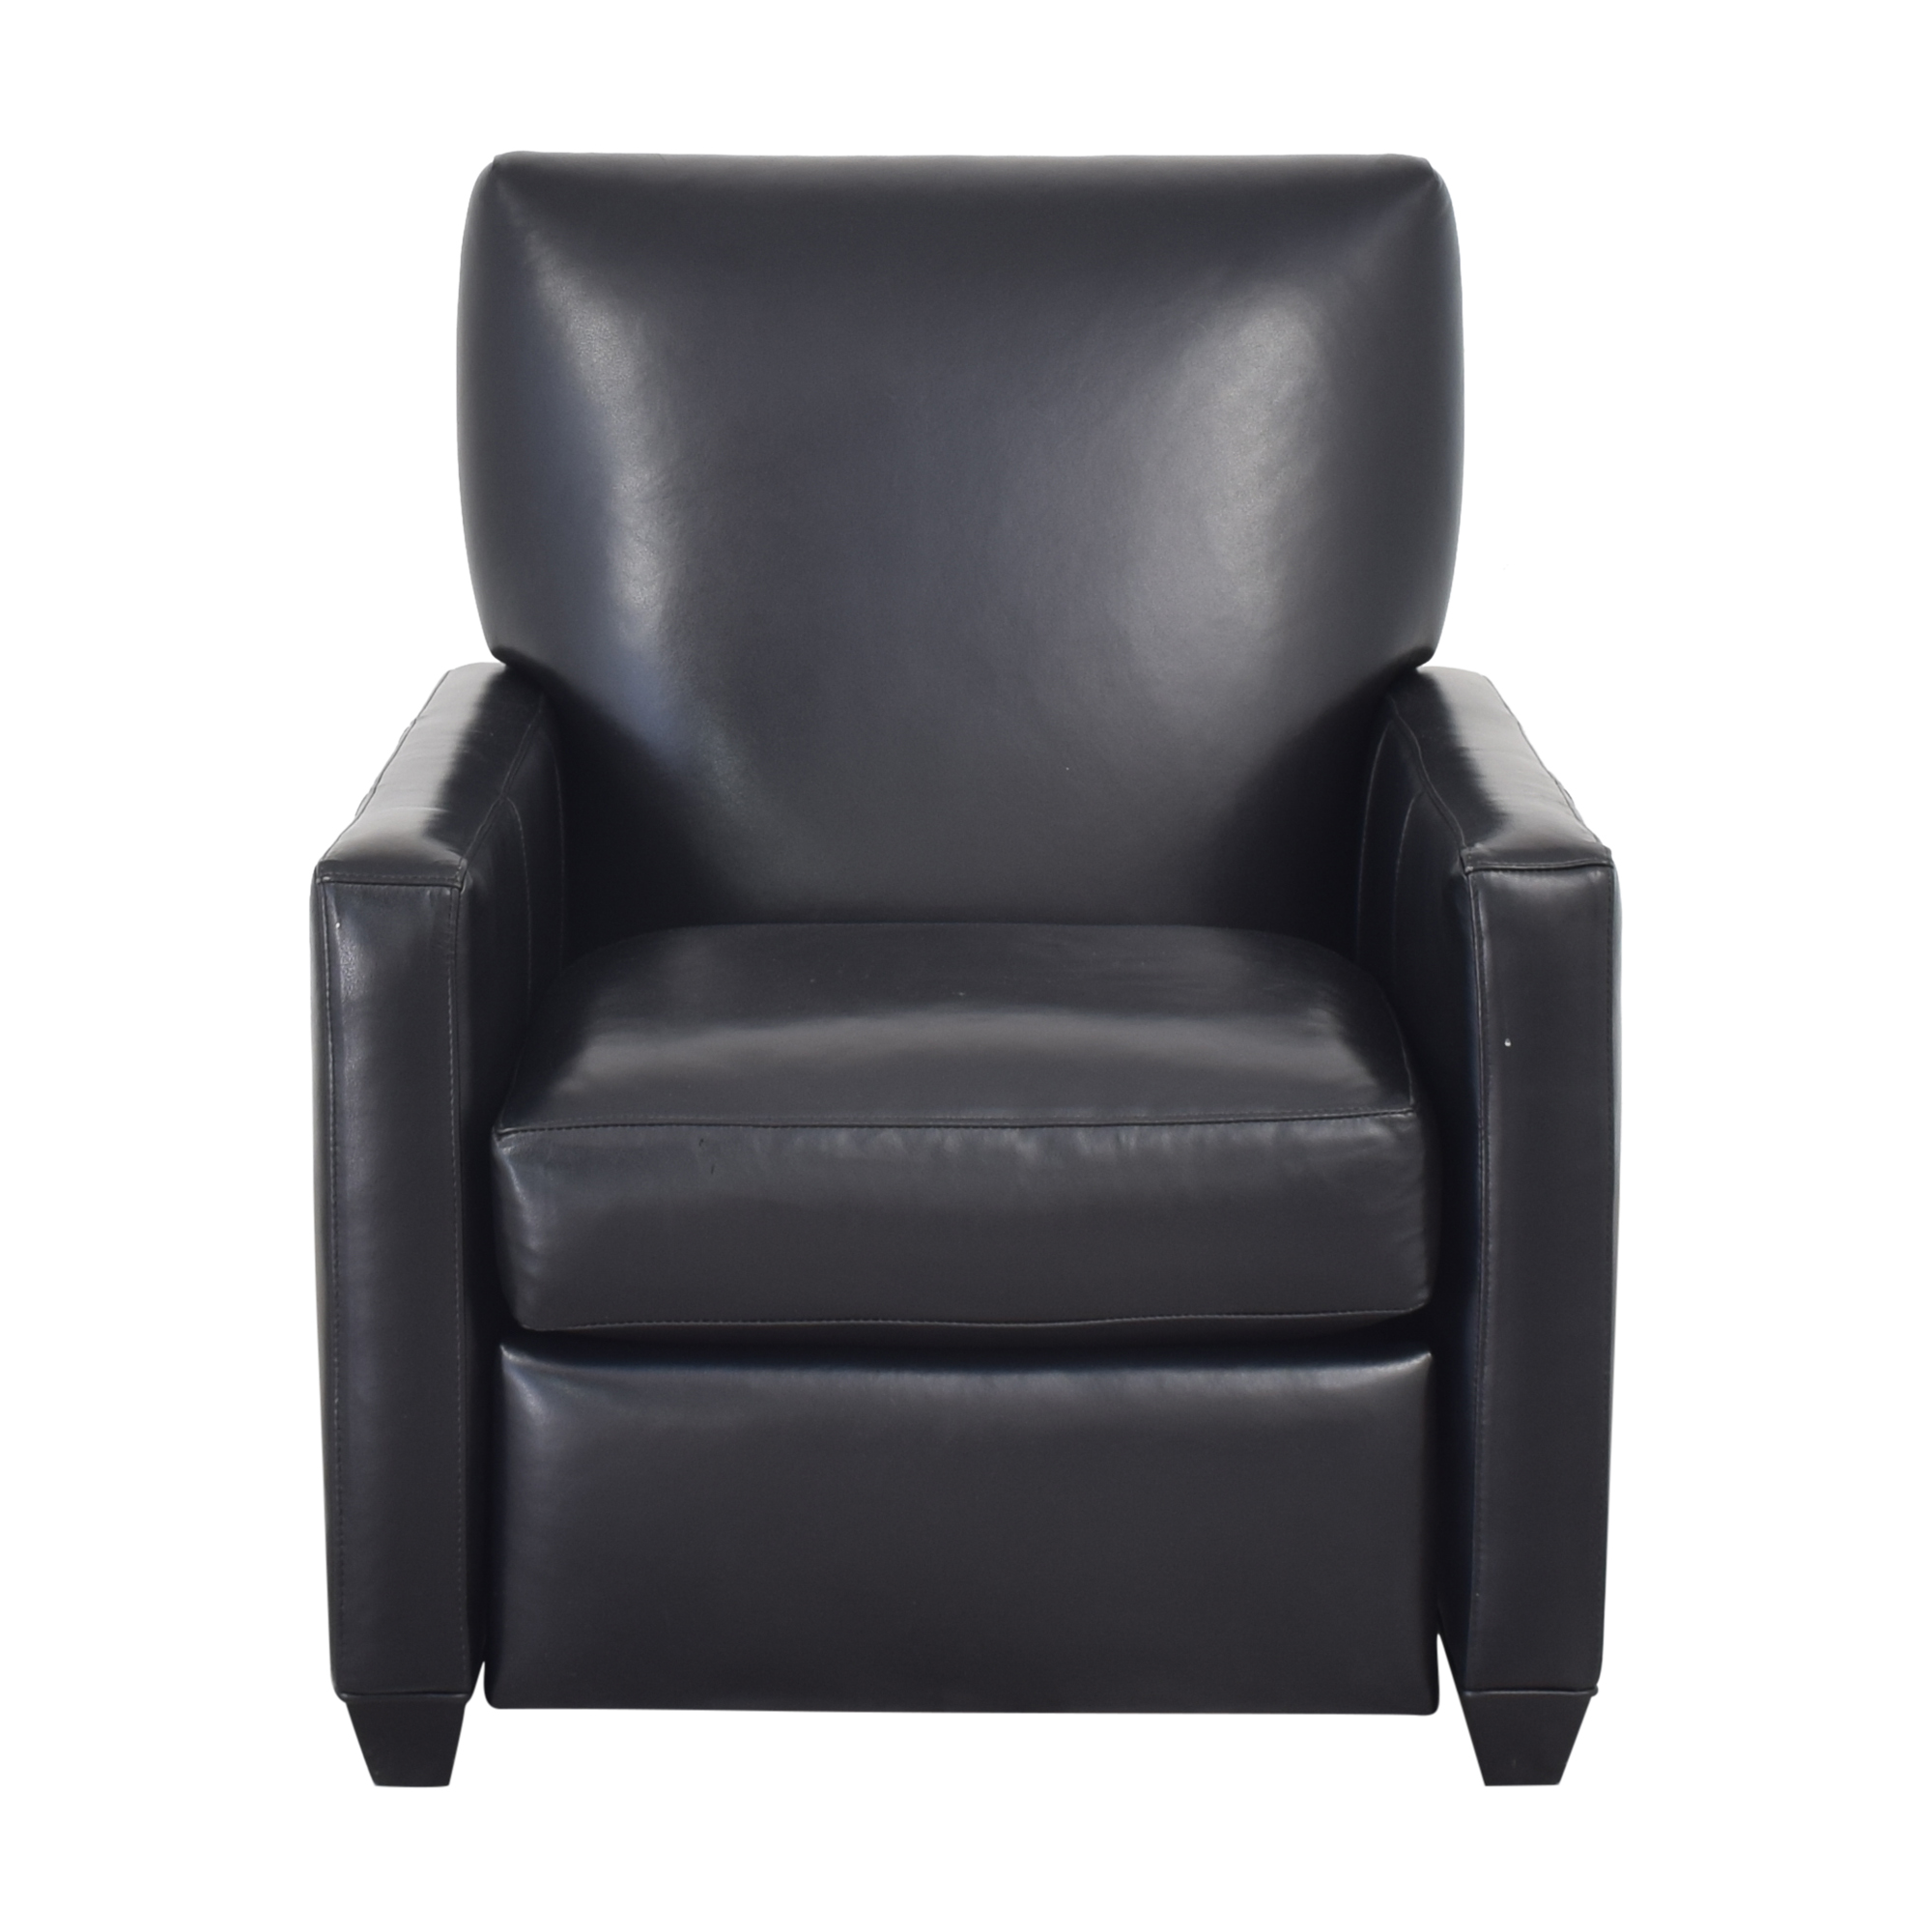 Crate & Barrel Crate & Barrel Tracy Leather Recliner nyc